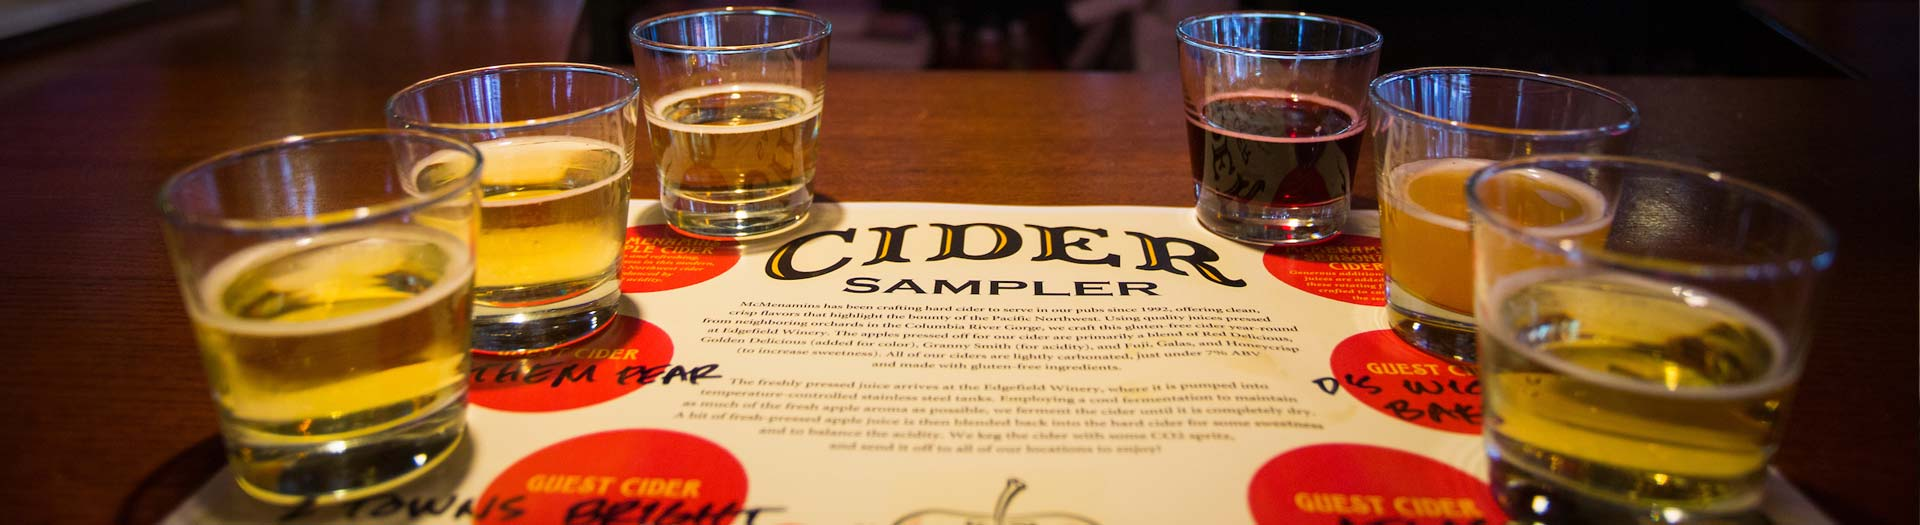 <h3 >Edgefield Cider</h3>